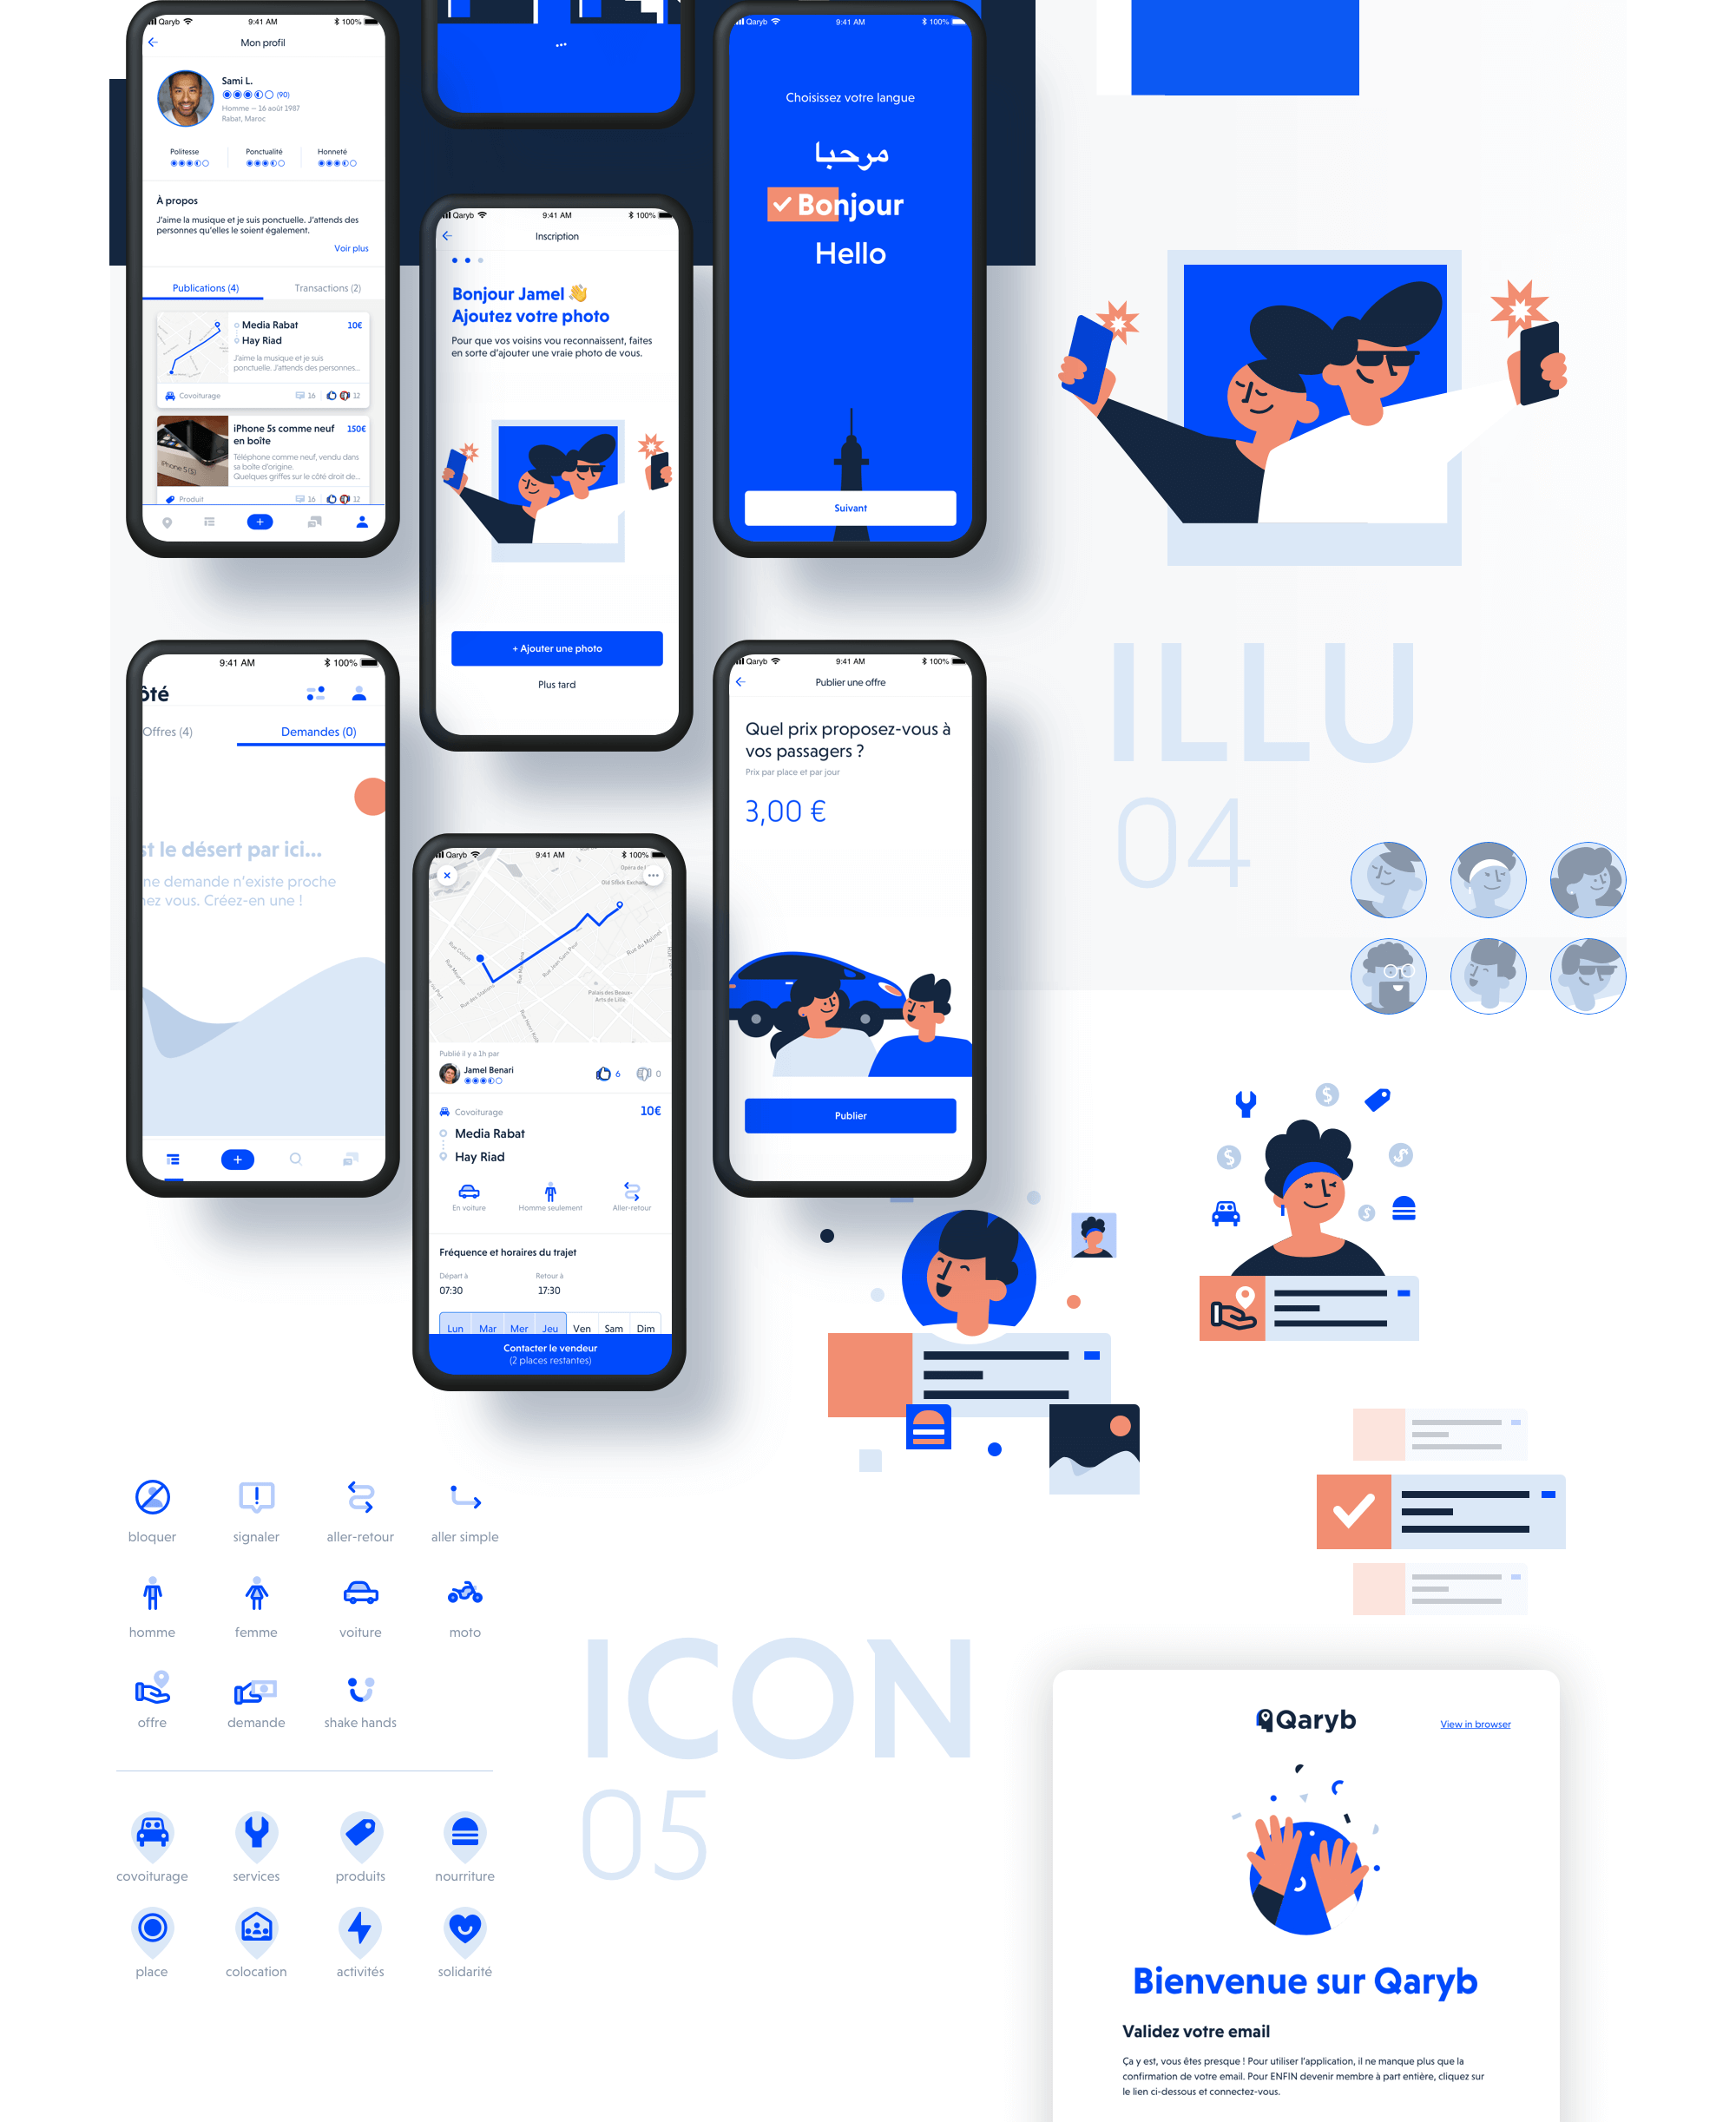 qaryb-branding-logo-app-ux-ui-icon-illustration-05-1